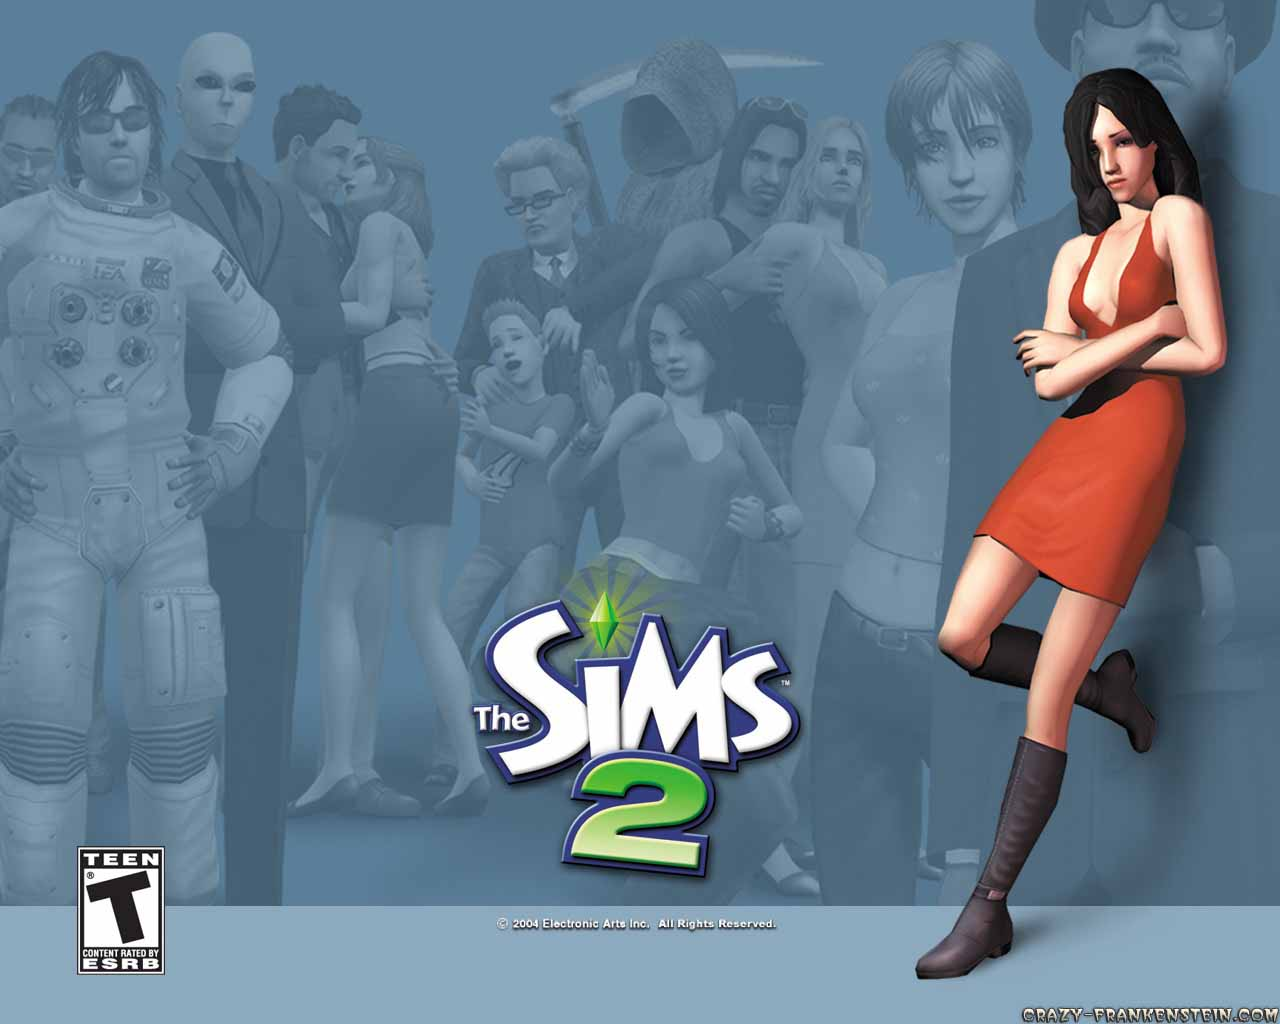 Wallpaper: The Sims 2 - Games wallpaper 2. Resolution: 1280x1024